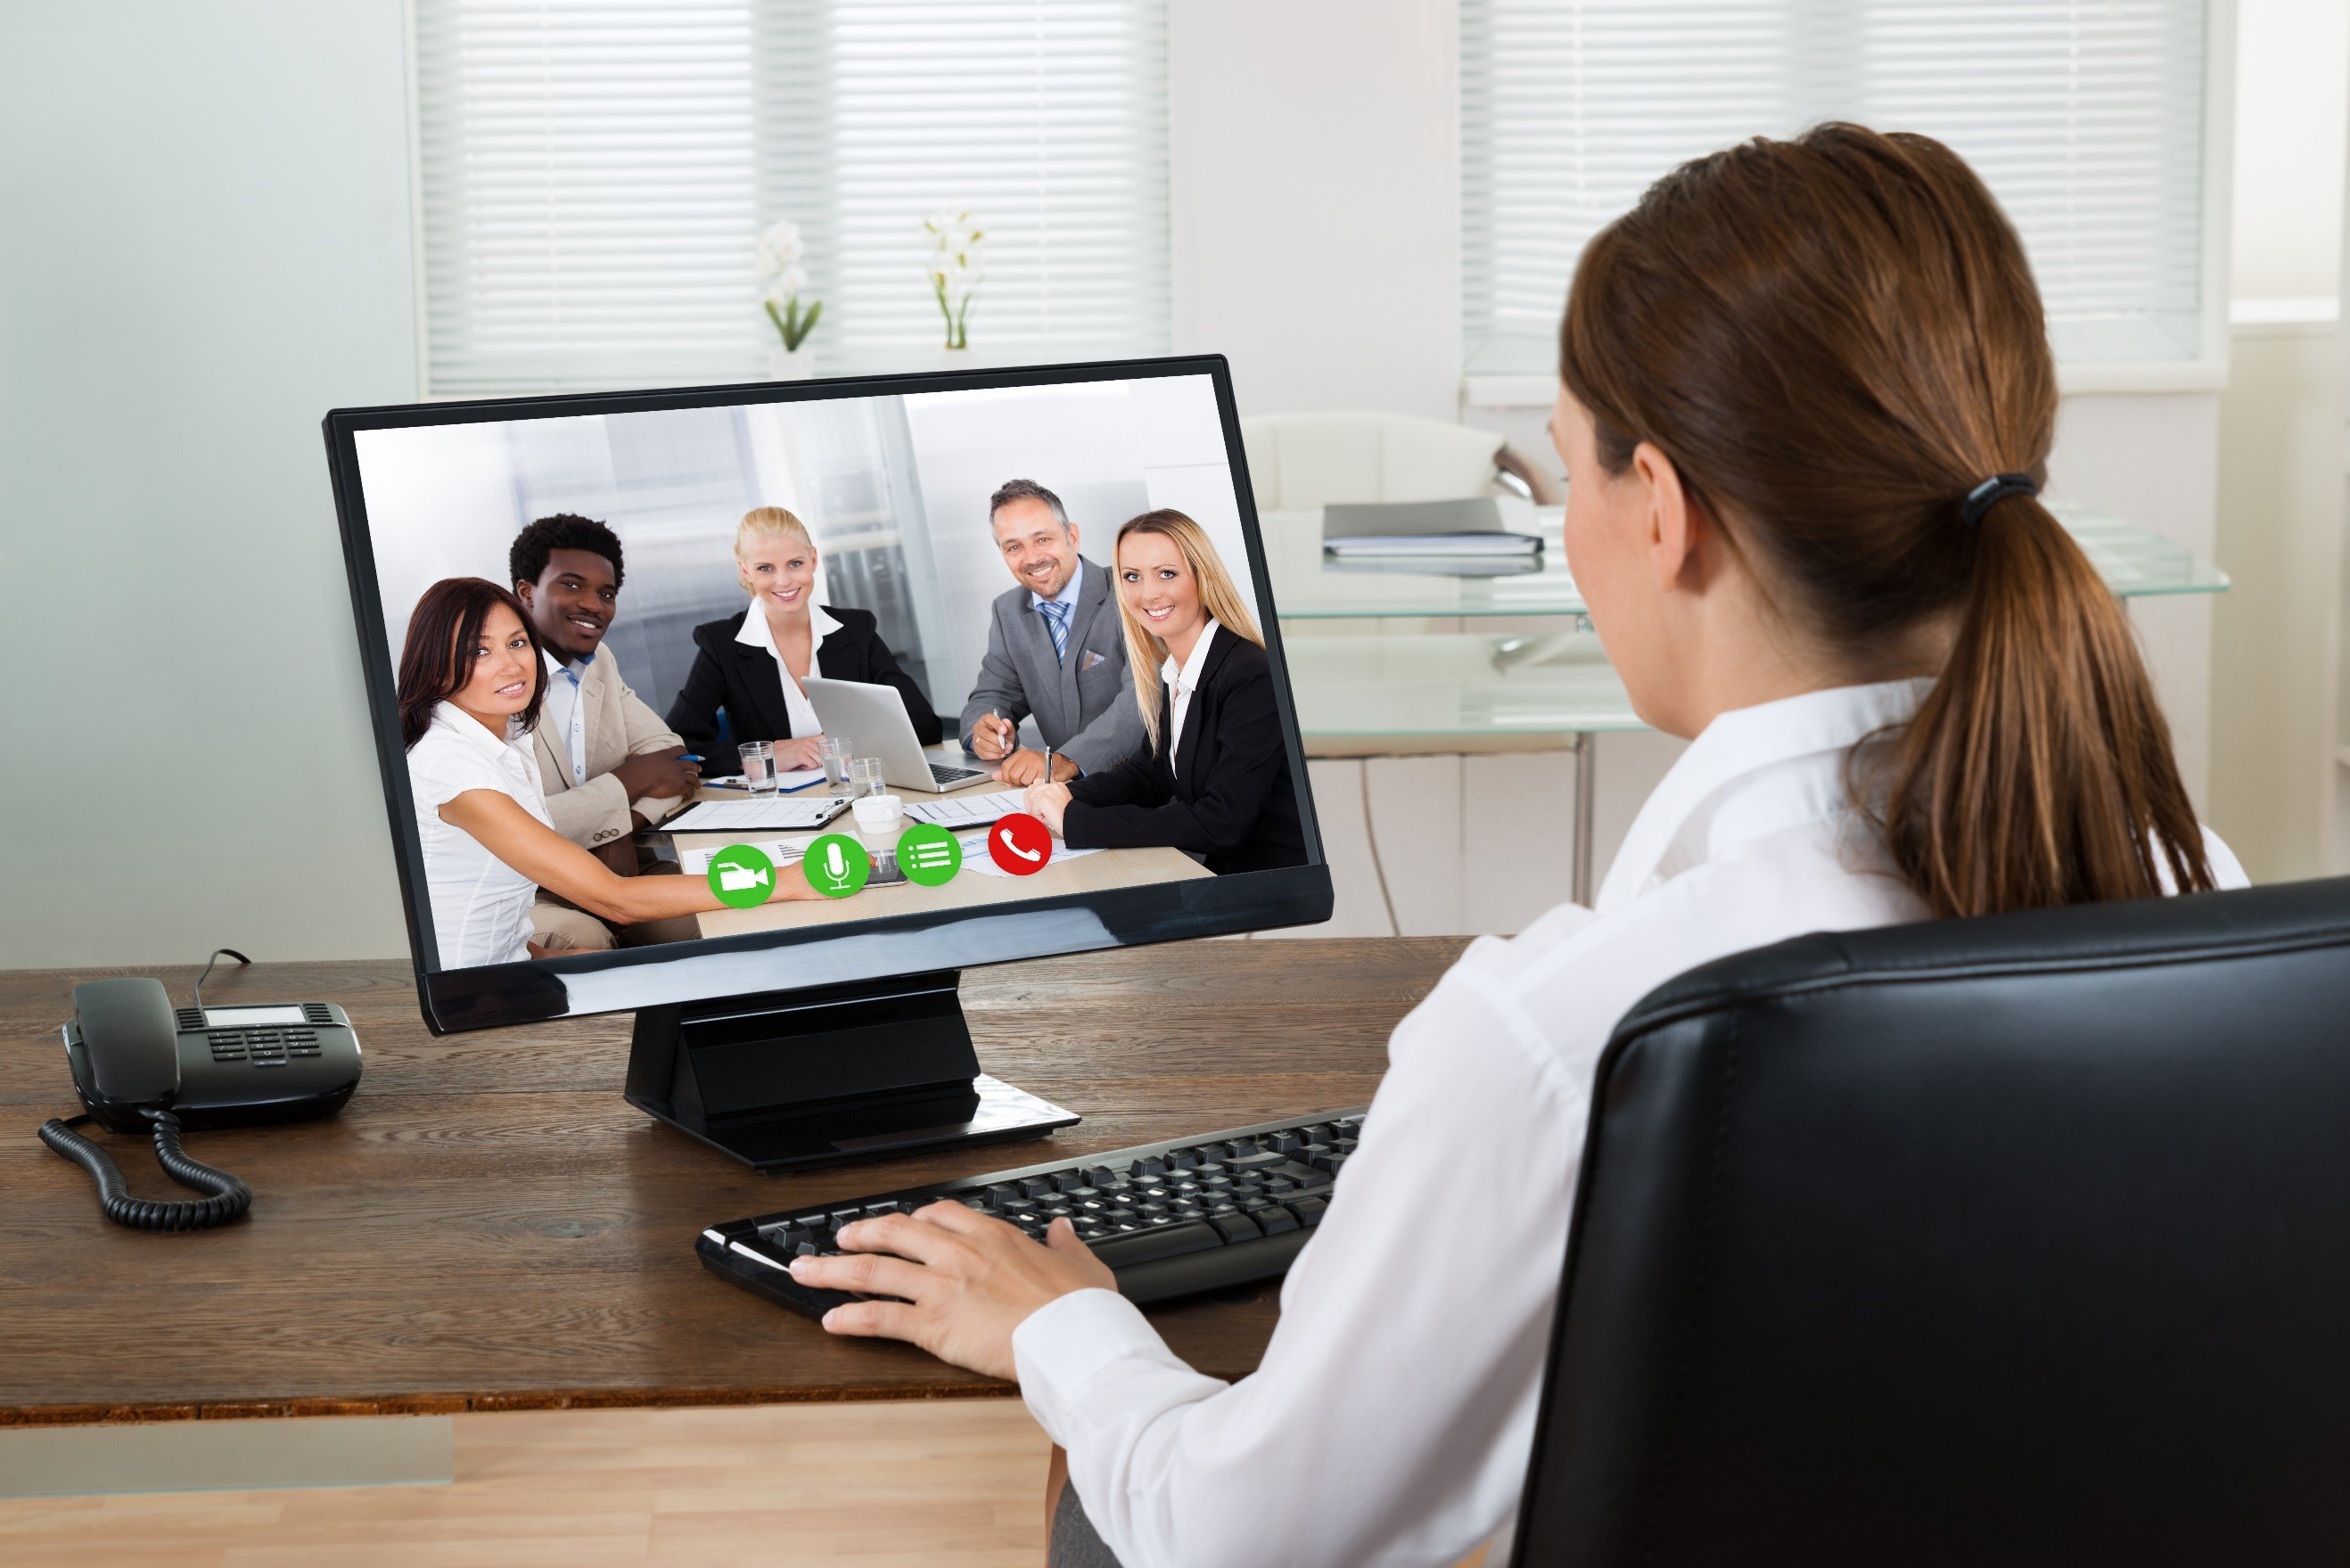 USAA-Member-Community-Phone-Video-Interview-Tips-small.jpg